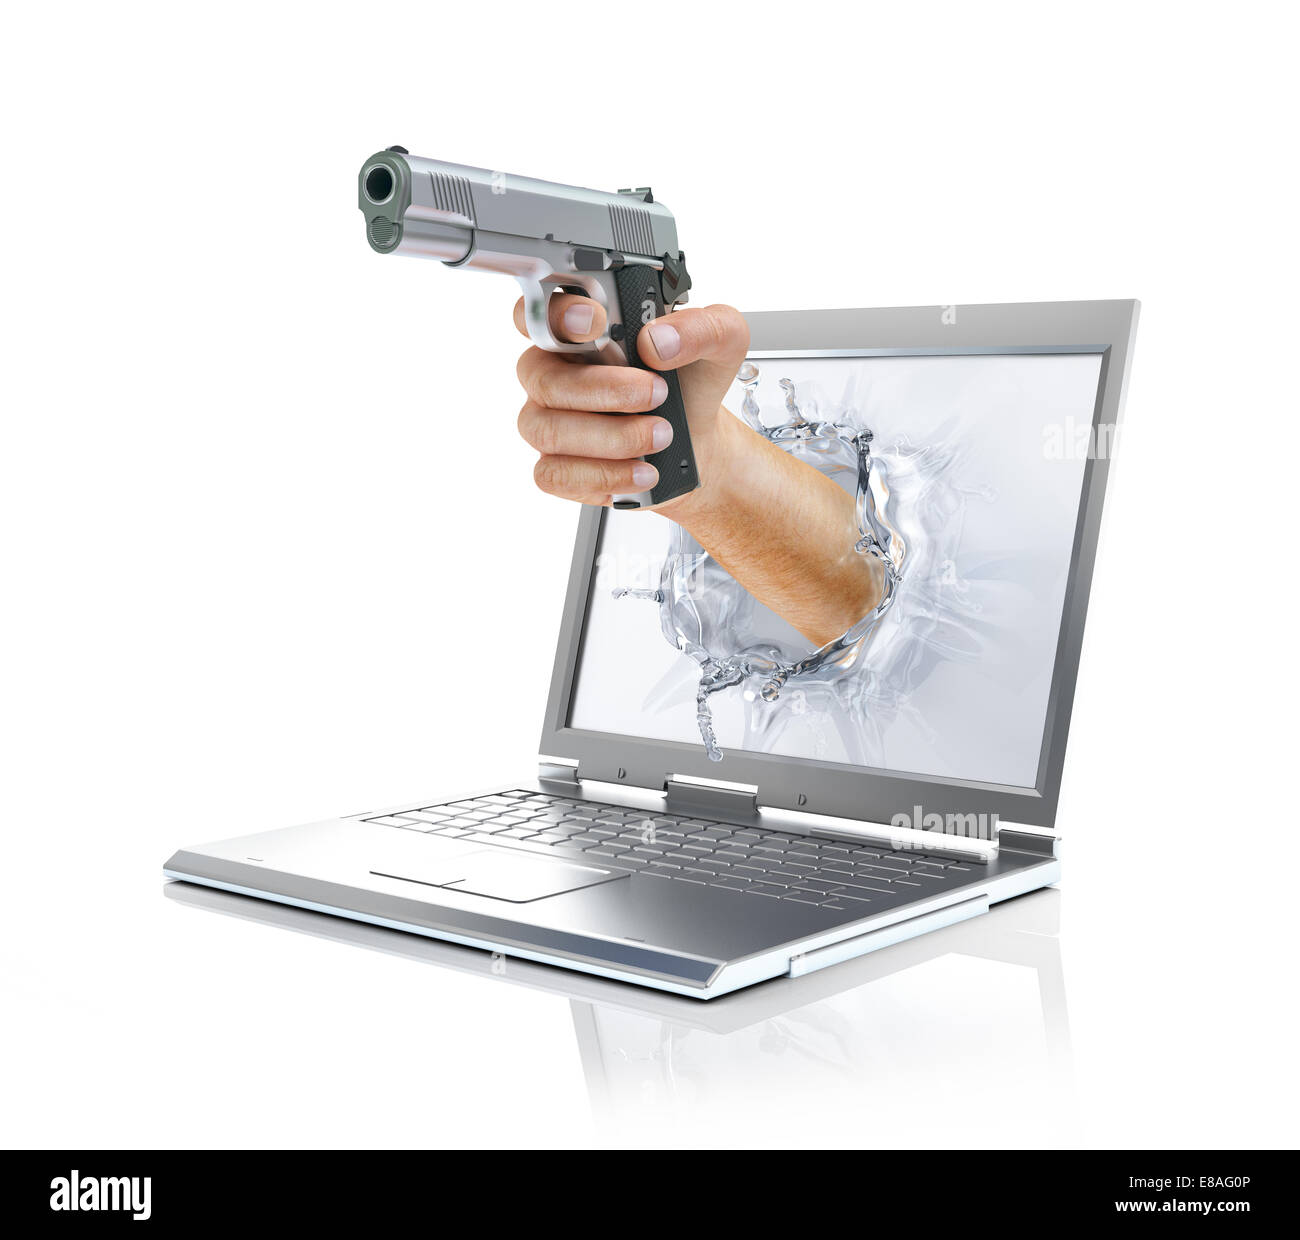 Man's hand holding gun, coming out from laptop screen forming a splash from liquid crystals. On white background, - Stock Image